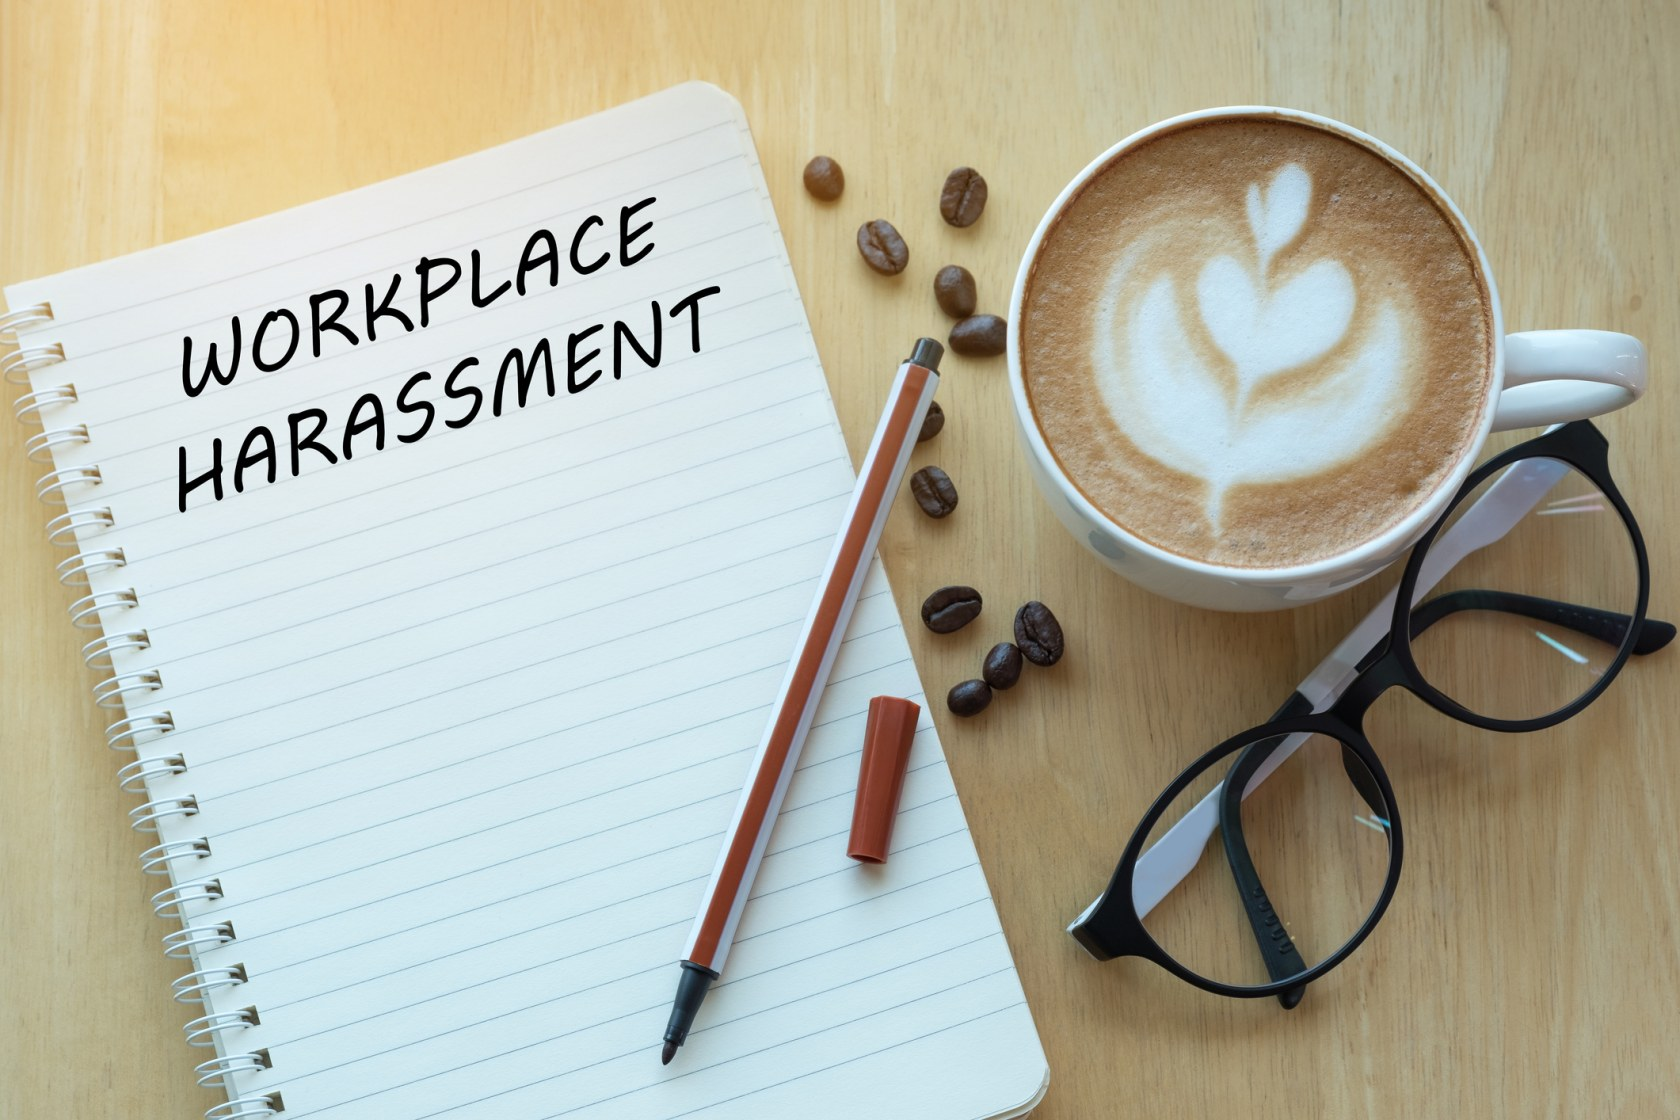 Workplace harassment concept on notebook with glasses, pencil and coffee cup on wooden table. Business concept.